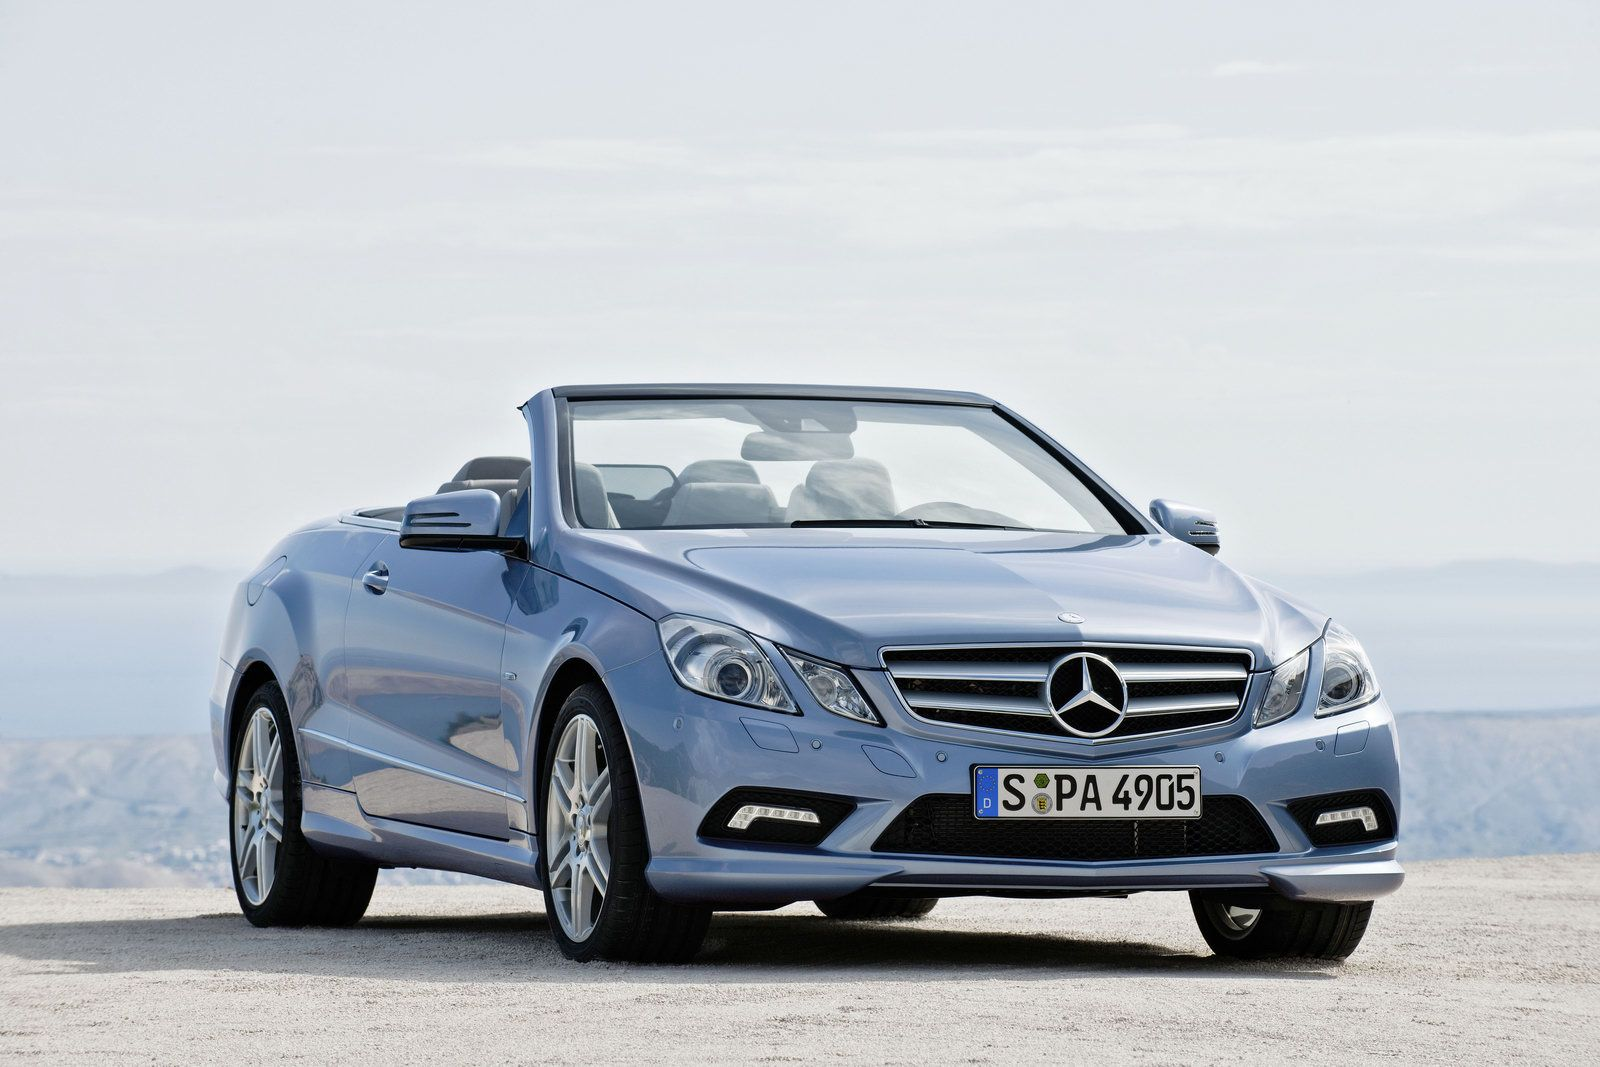 New 2010 mercedes e class convertible officially revealed for 2010 mercedes benz clk350